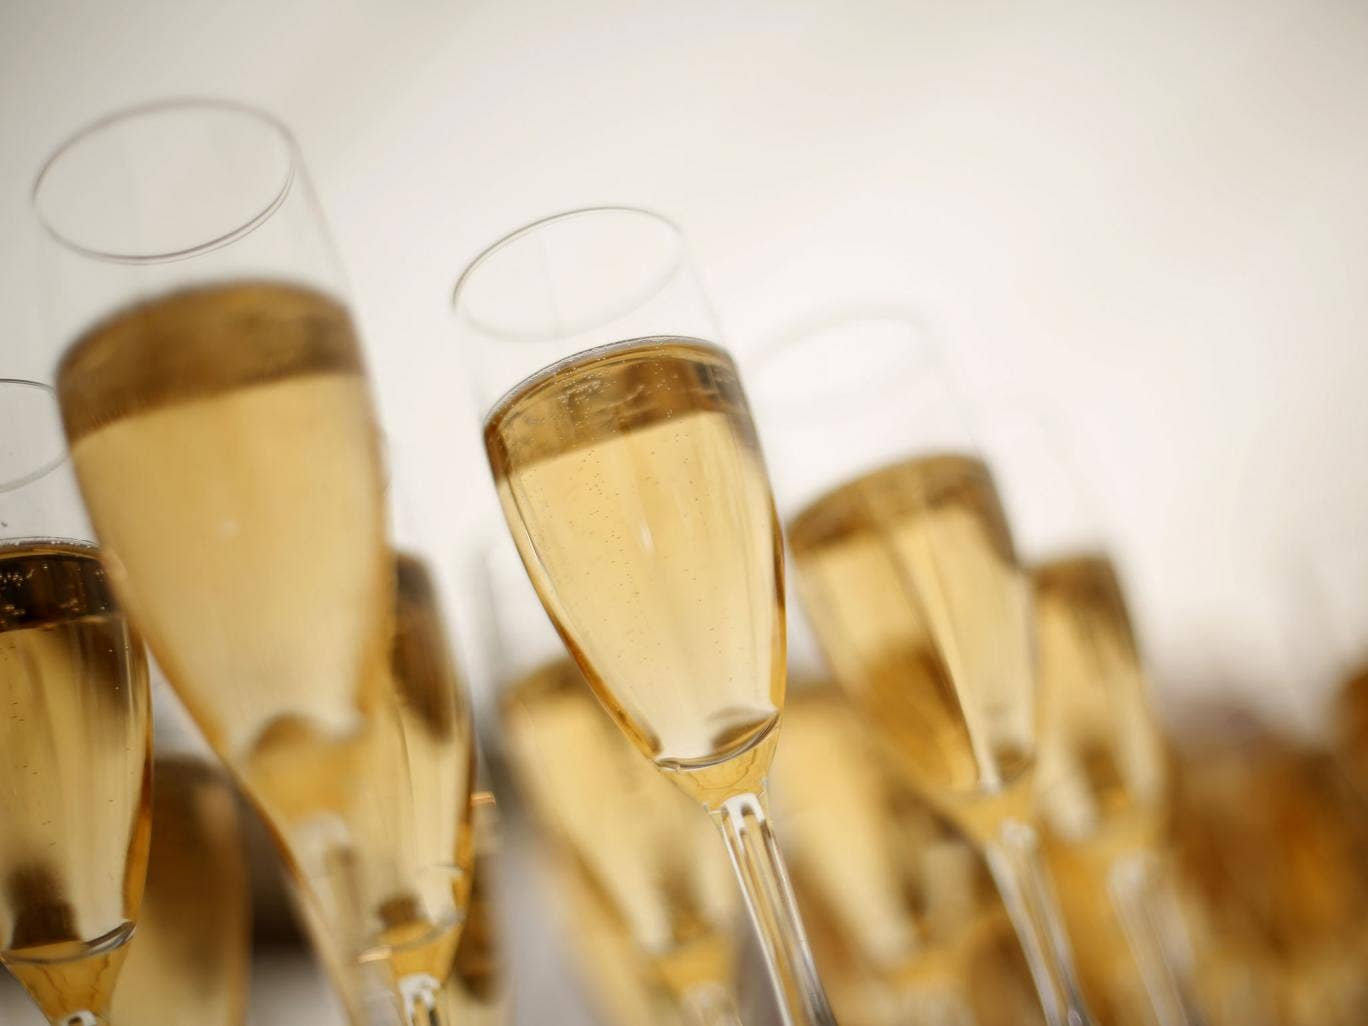 Champagne sales were down 5.1 per cent by volume and 3.8 per cent in terms of value in the UK